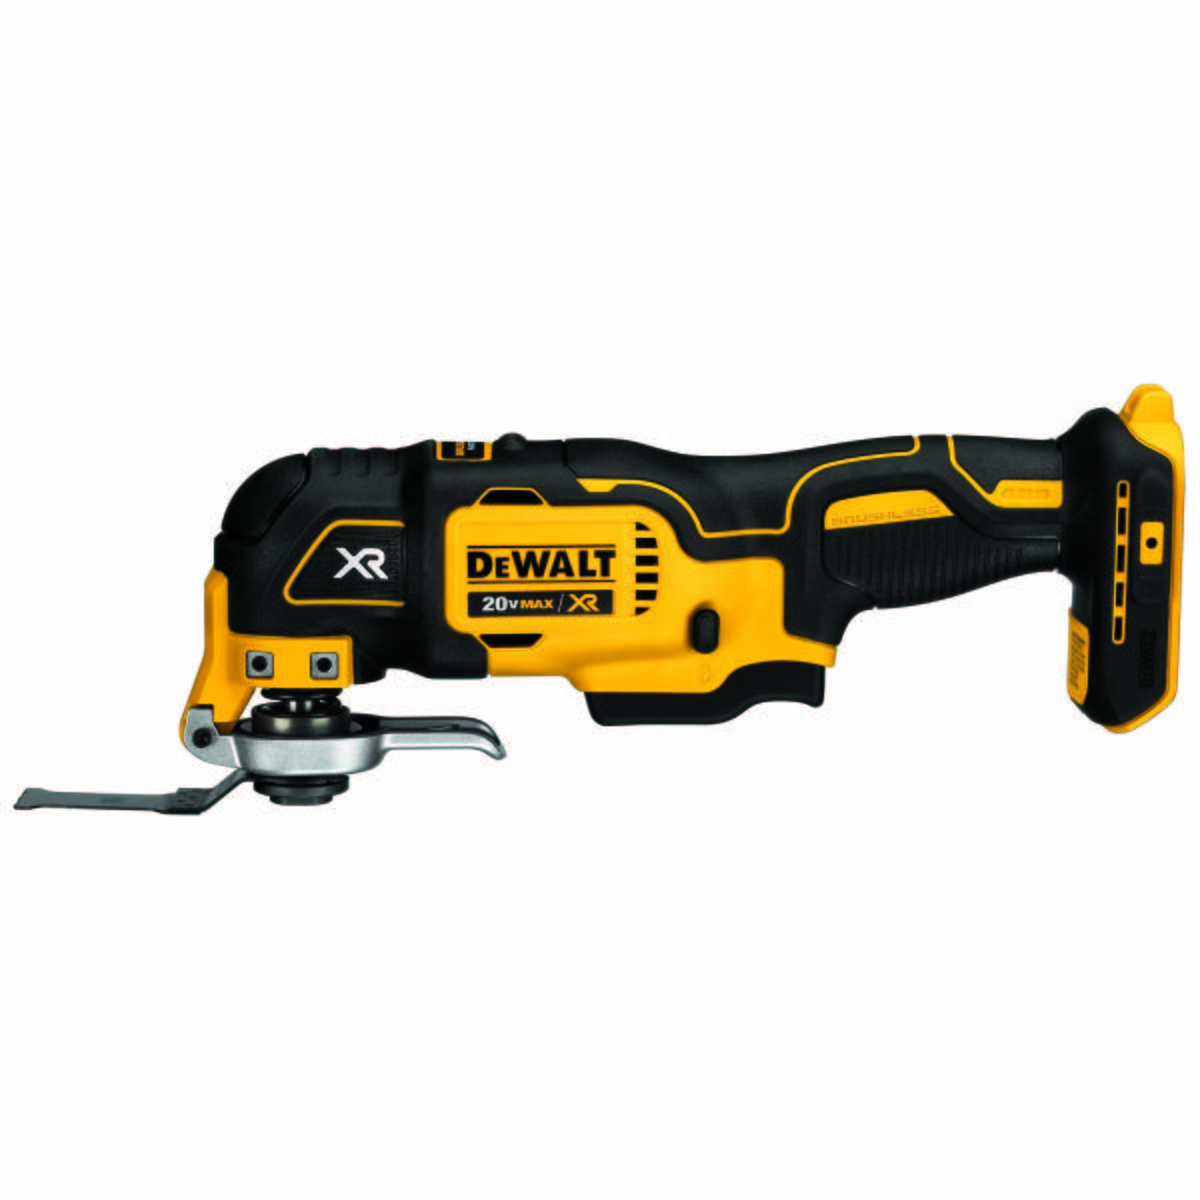 20V MAX MULTI-MASTERIAL OSCILLATING TOOL KIT (Bare)